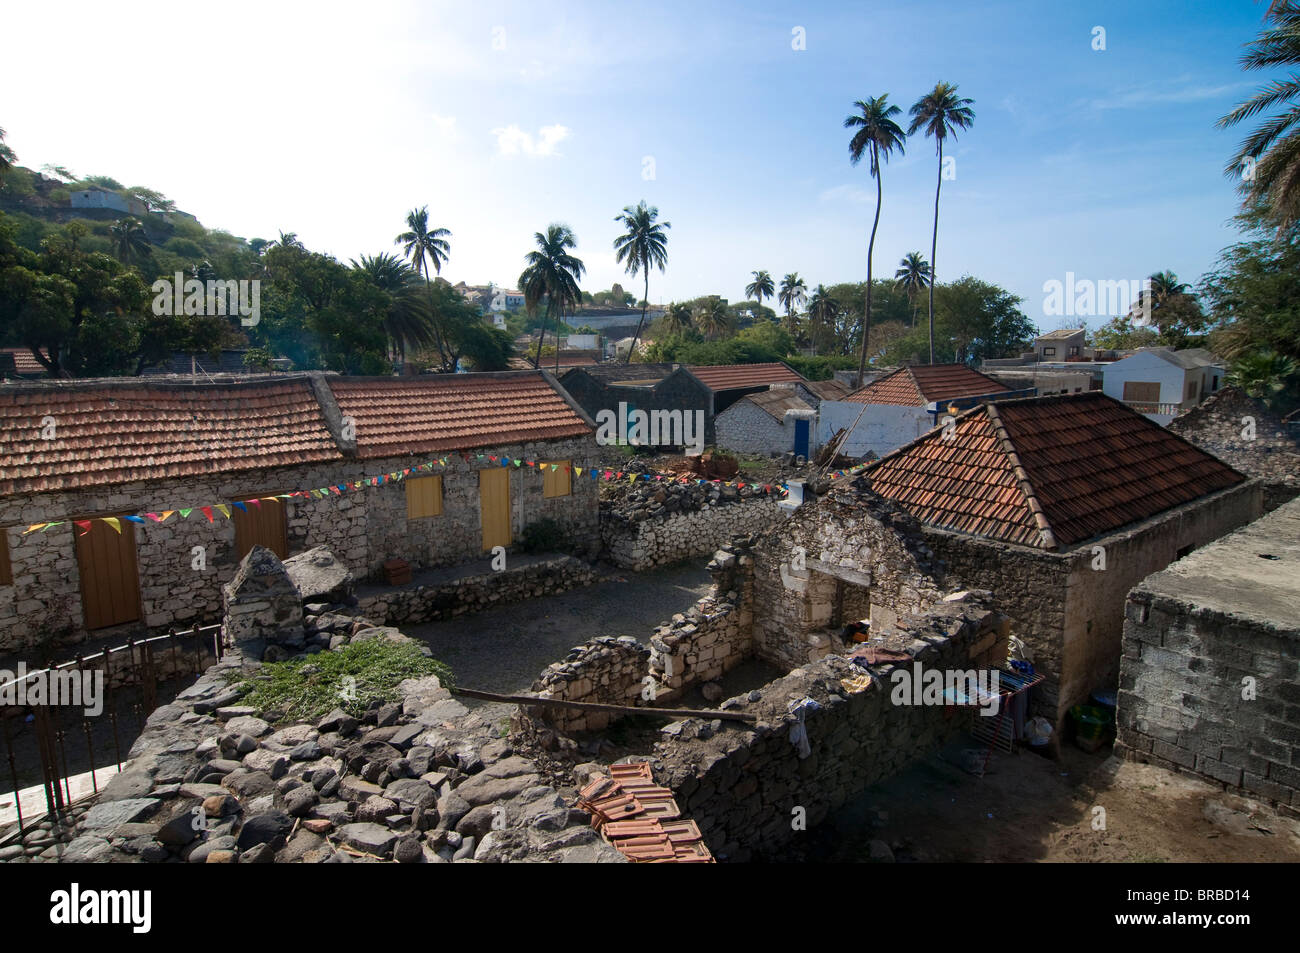 Buildings in picturesque old town of Ciudad Velha (Cidade Velha), Santiago, Cape Verde - Stock Image